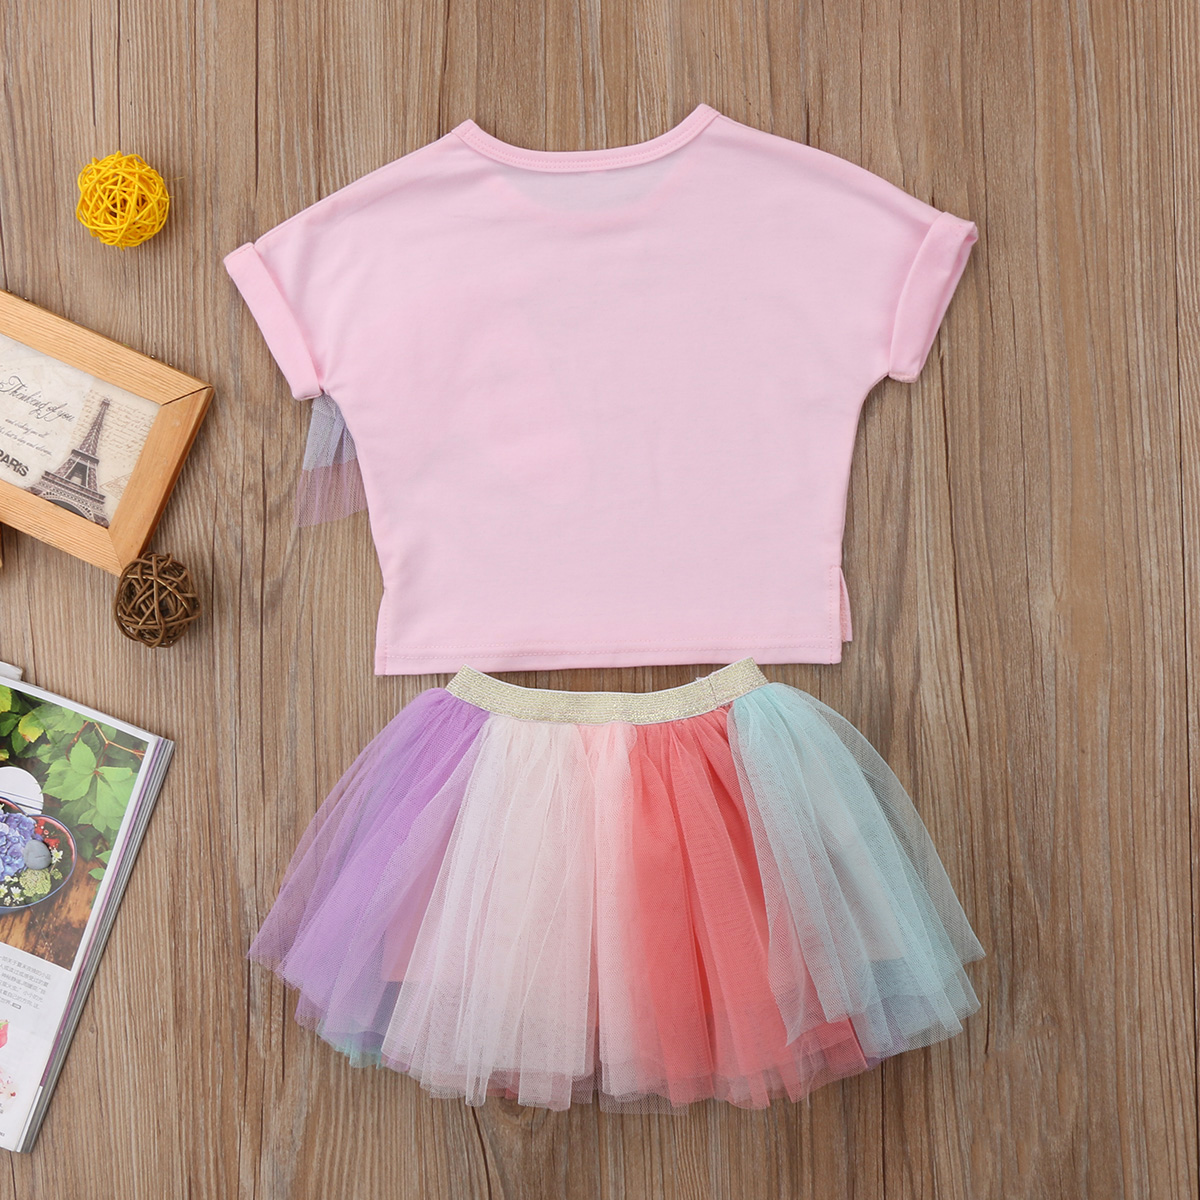 4b0d99ab2f17 Kid Baby Girls Clothes Set Girls Lace Unicorn T shirt Top+Tulle Rainbow  Tutu Skirt Outfits Set Girl Clothing 2018 Summer 6M 5T-in Clothing Sets  from Mother ...